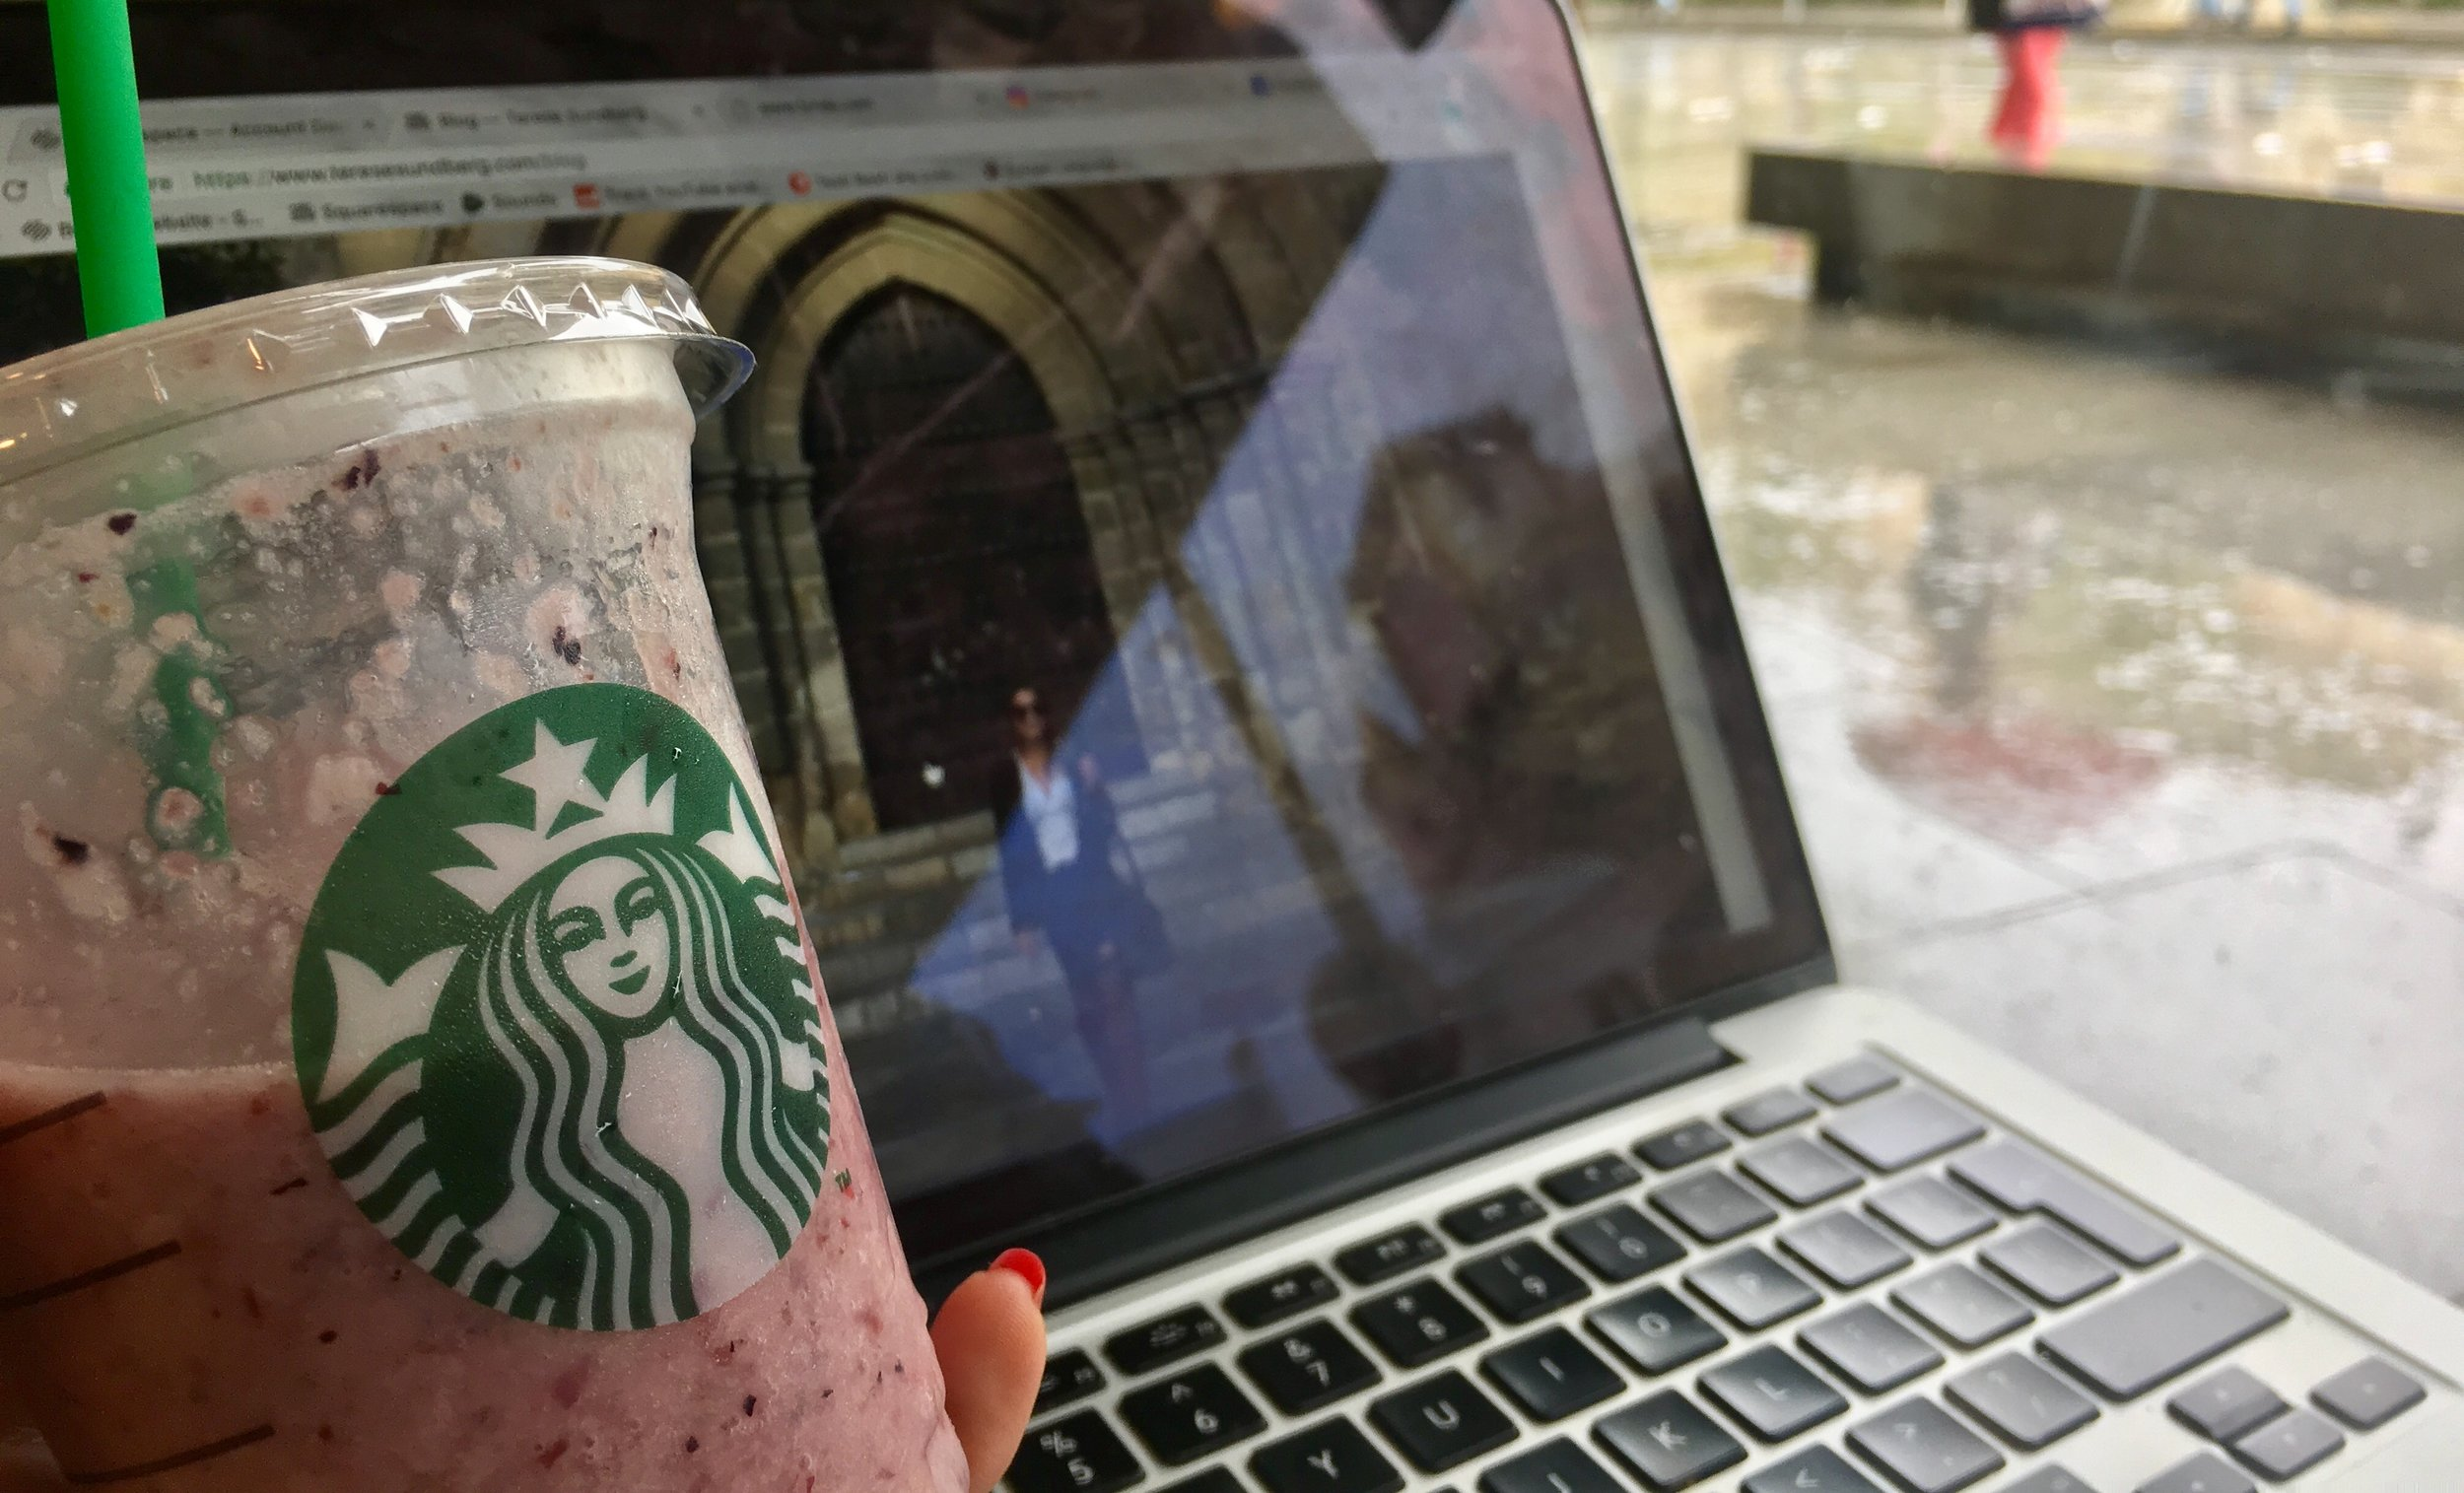 The Starbucks smoothies is a little bit of a disappointment. Don't get them.